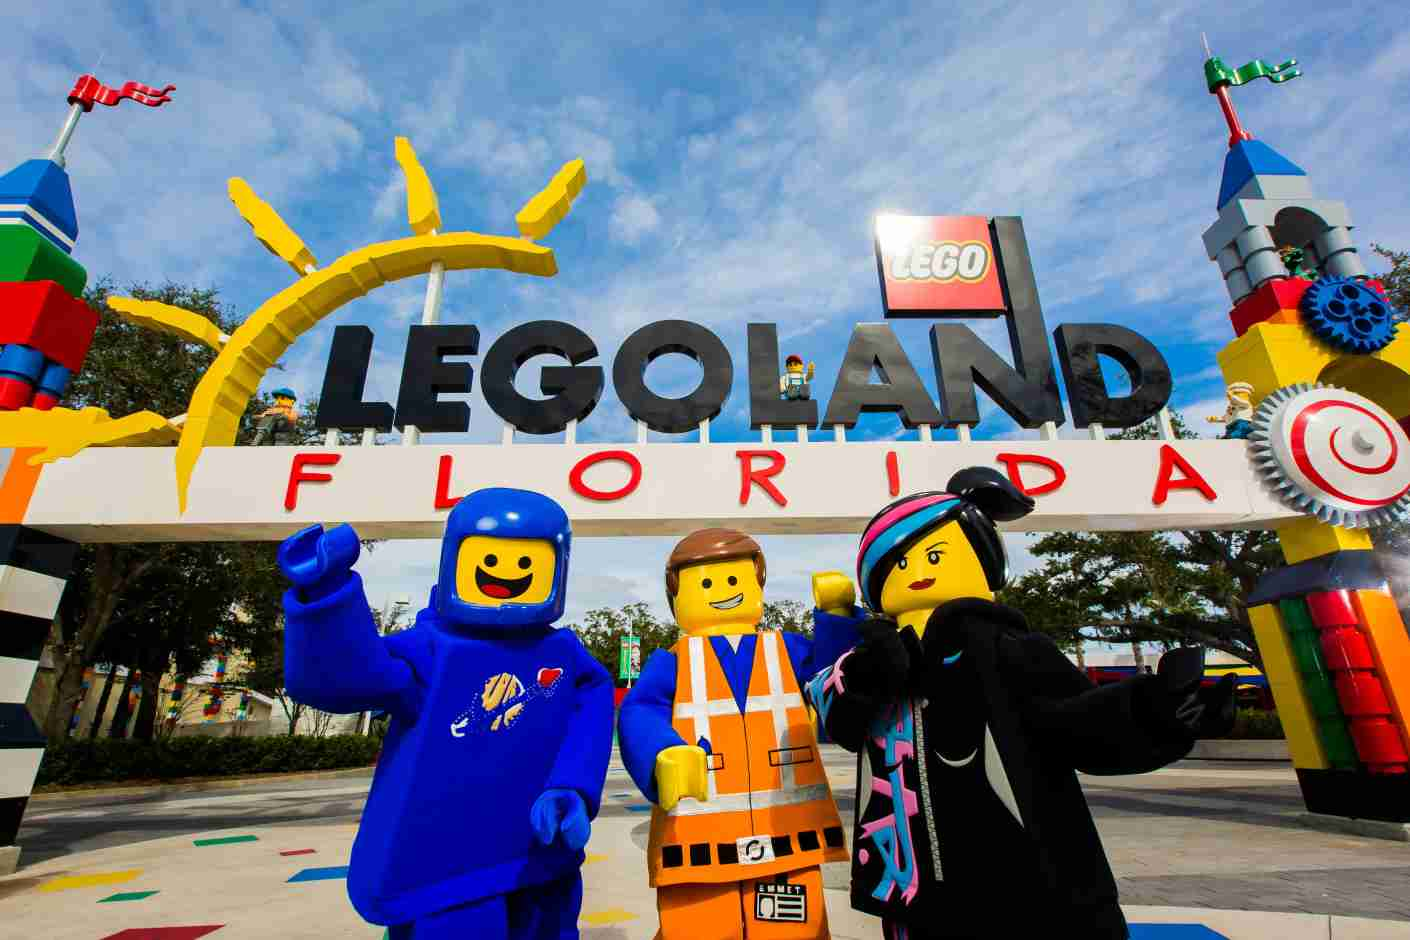 """WINTER HAVEN, FL -- January 26, 2016 -- Emmet, Wyldstyle, and Benny return to print their handprints in cement in preparation for """"The LEGO® Movie™ 4D A New Adventure"""" premiering Friday at LEGOLAND® Florida Resort in Winter Haven, Florida. (PHOTO / Chip Litherland Photography for LEGOLAND Florida Resort)"""